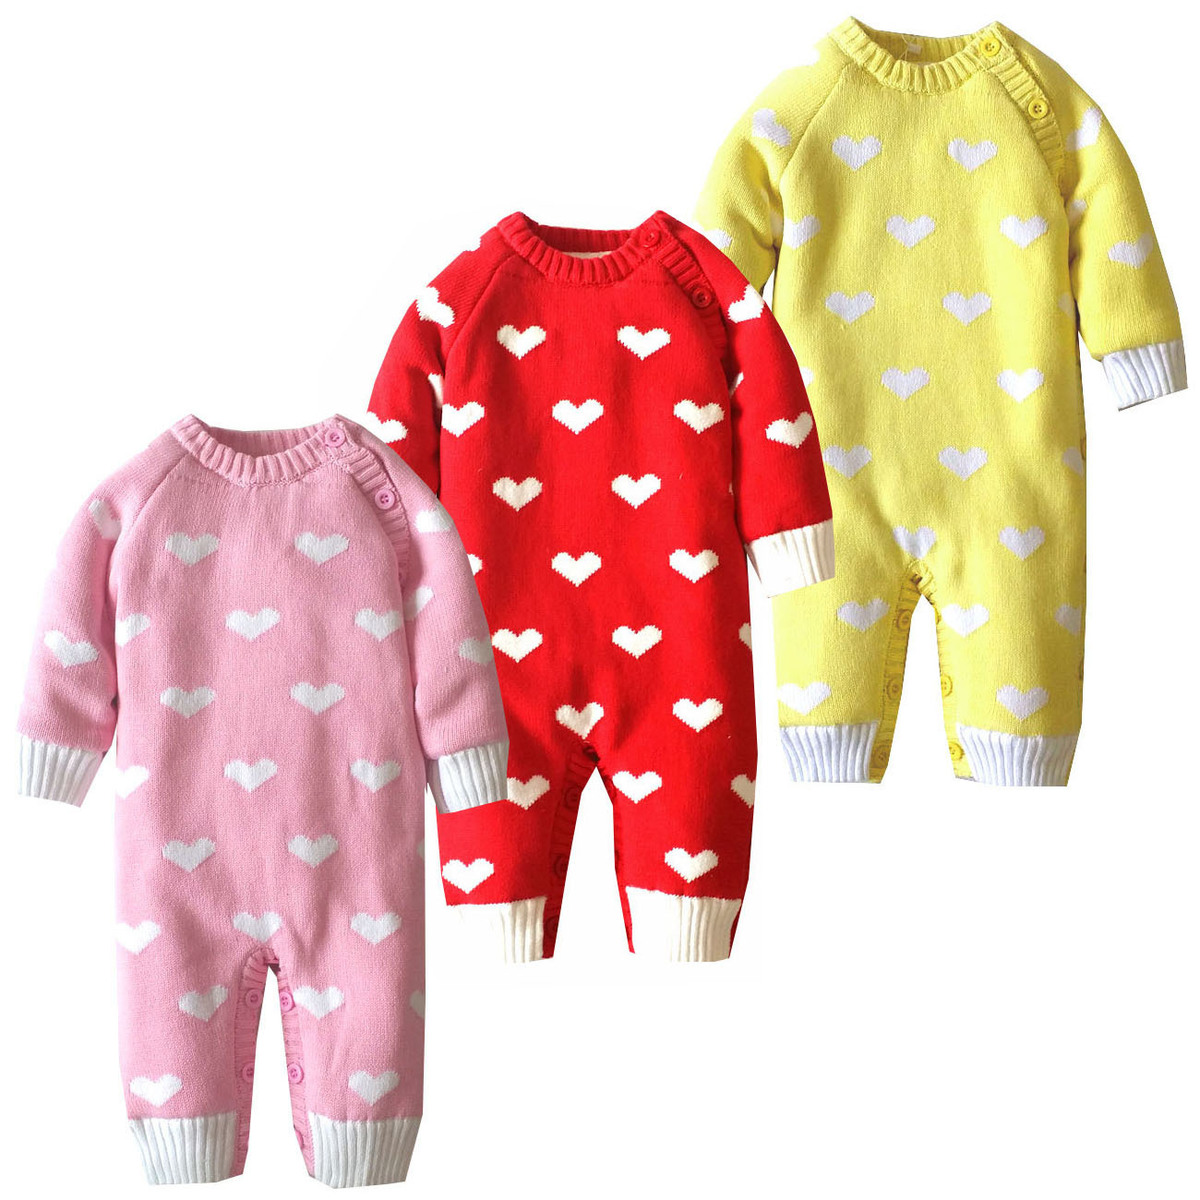 2017 Baby Boys Romper Winter Christmas Heart Thick Warm Baby Knitting Velvet Rompers Newborn Infant Toddler Jumpsuit Coveralls<br>